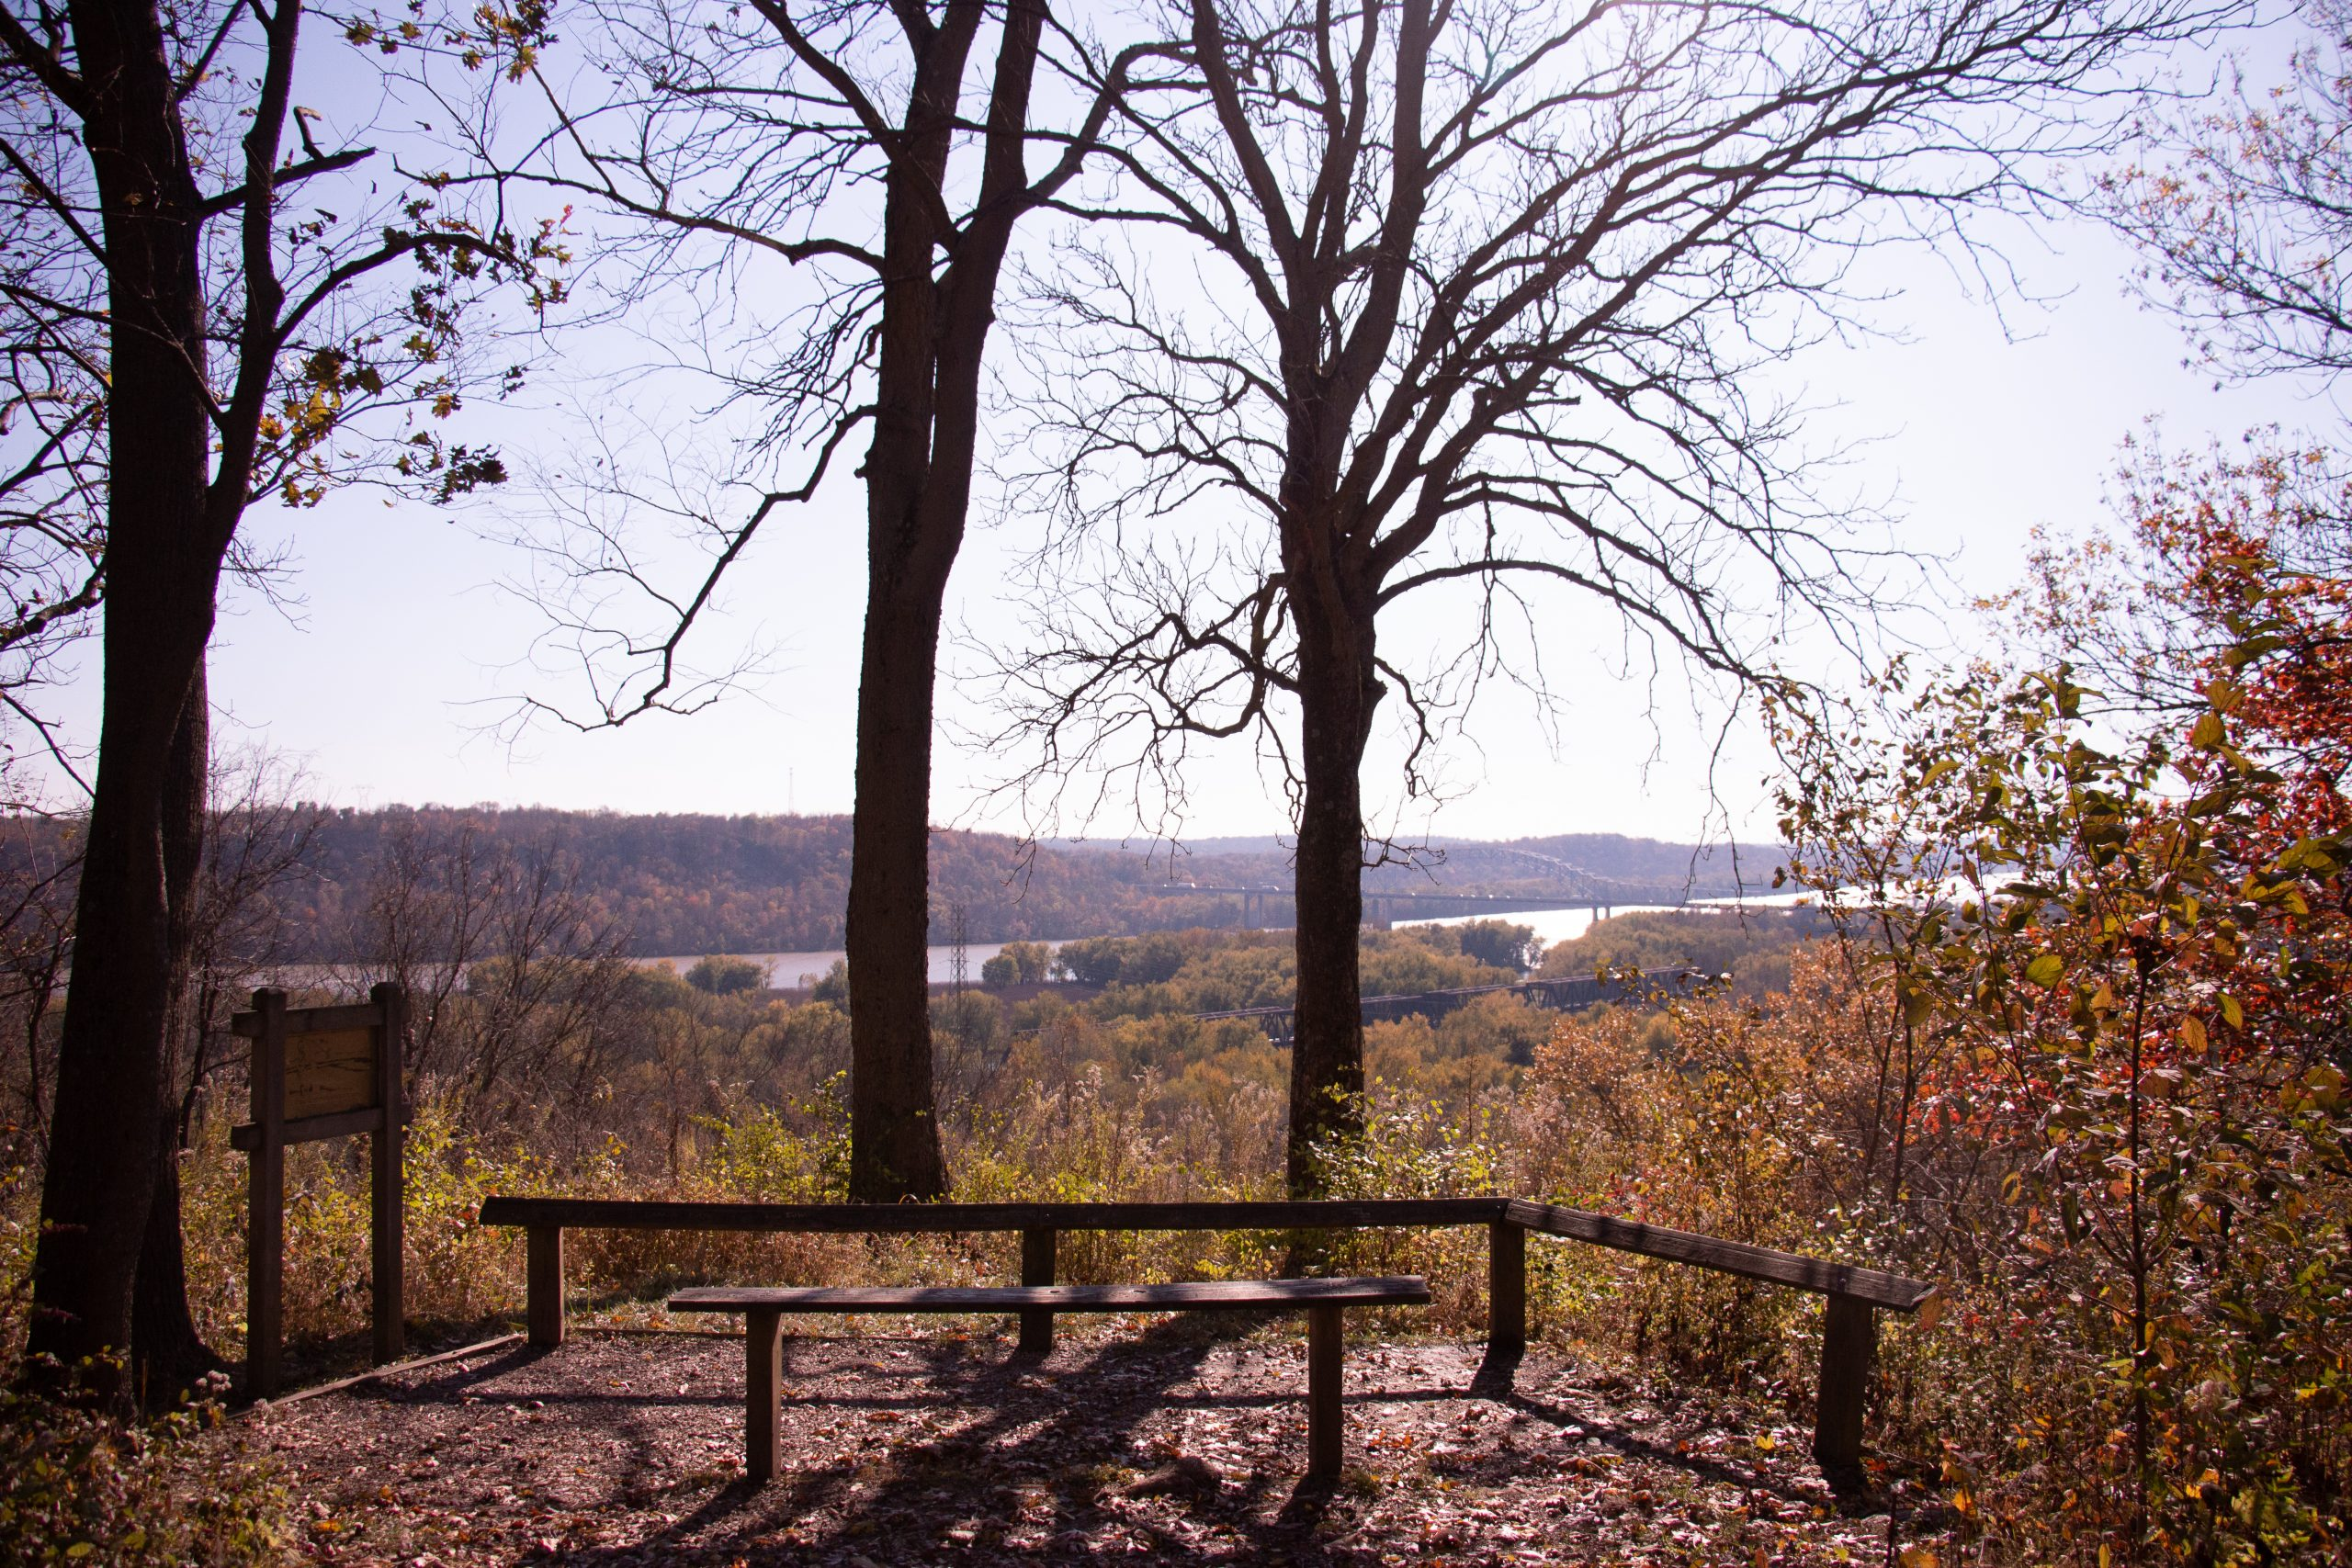 The point of the Miami Fort Trail not only has views of the Great Miami and Ohio rivers, but you can see Ohio, Kentucky and Indiana.